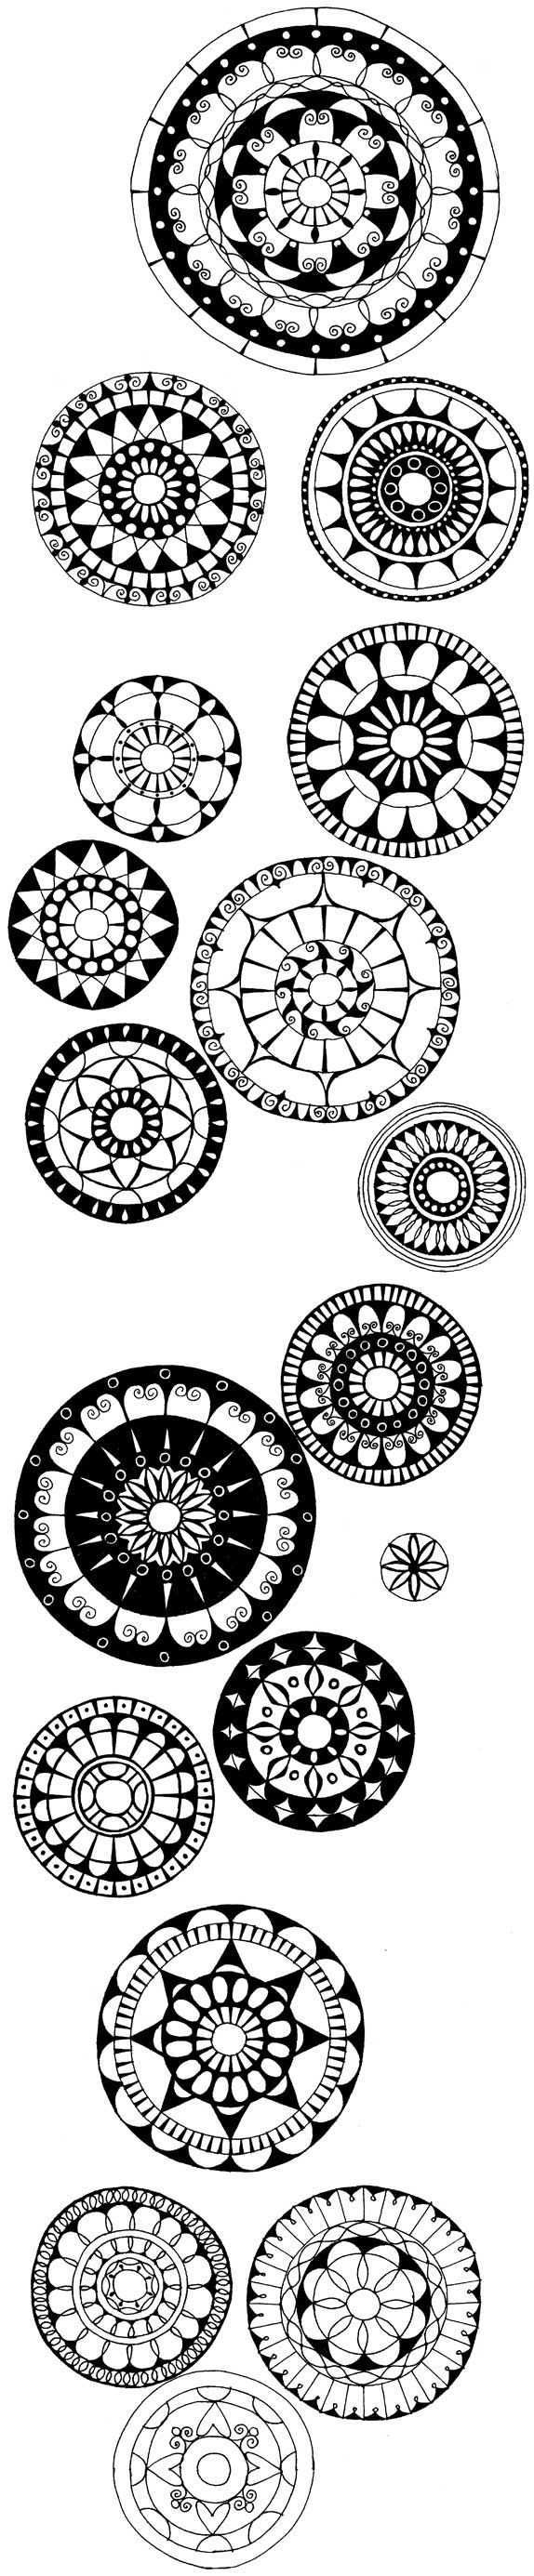 Some Amazing Doodles Maybe Print Them Out As Coloring Pages To Pass The Time Mit Bildern Mandalas Zum Ausmalen